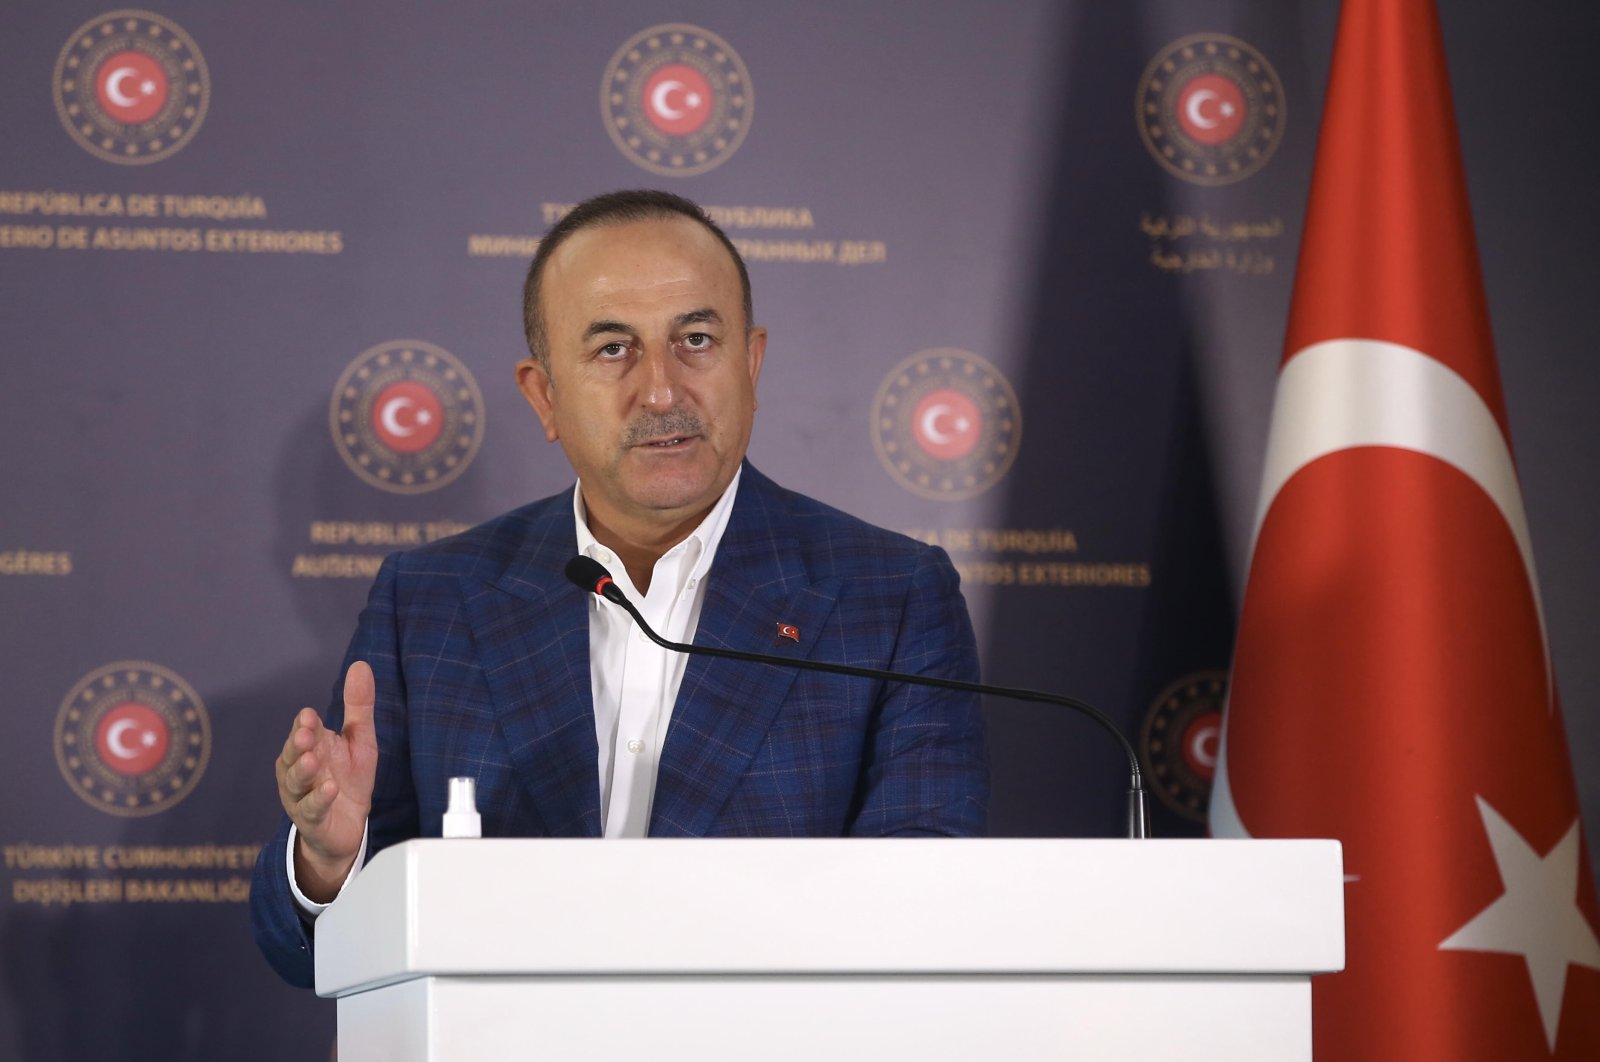 Foreign Minister Mevlüt Çavuşoğlu speaks at a joint press conference with his Maltese counterpart Evarist Bartolo in Antalya province, Turkey, Sept. 12, 2020. (AA Photo)